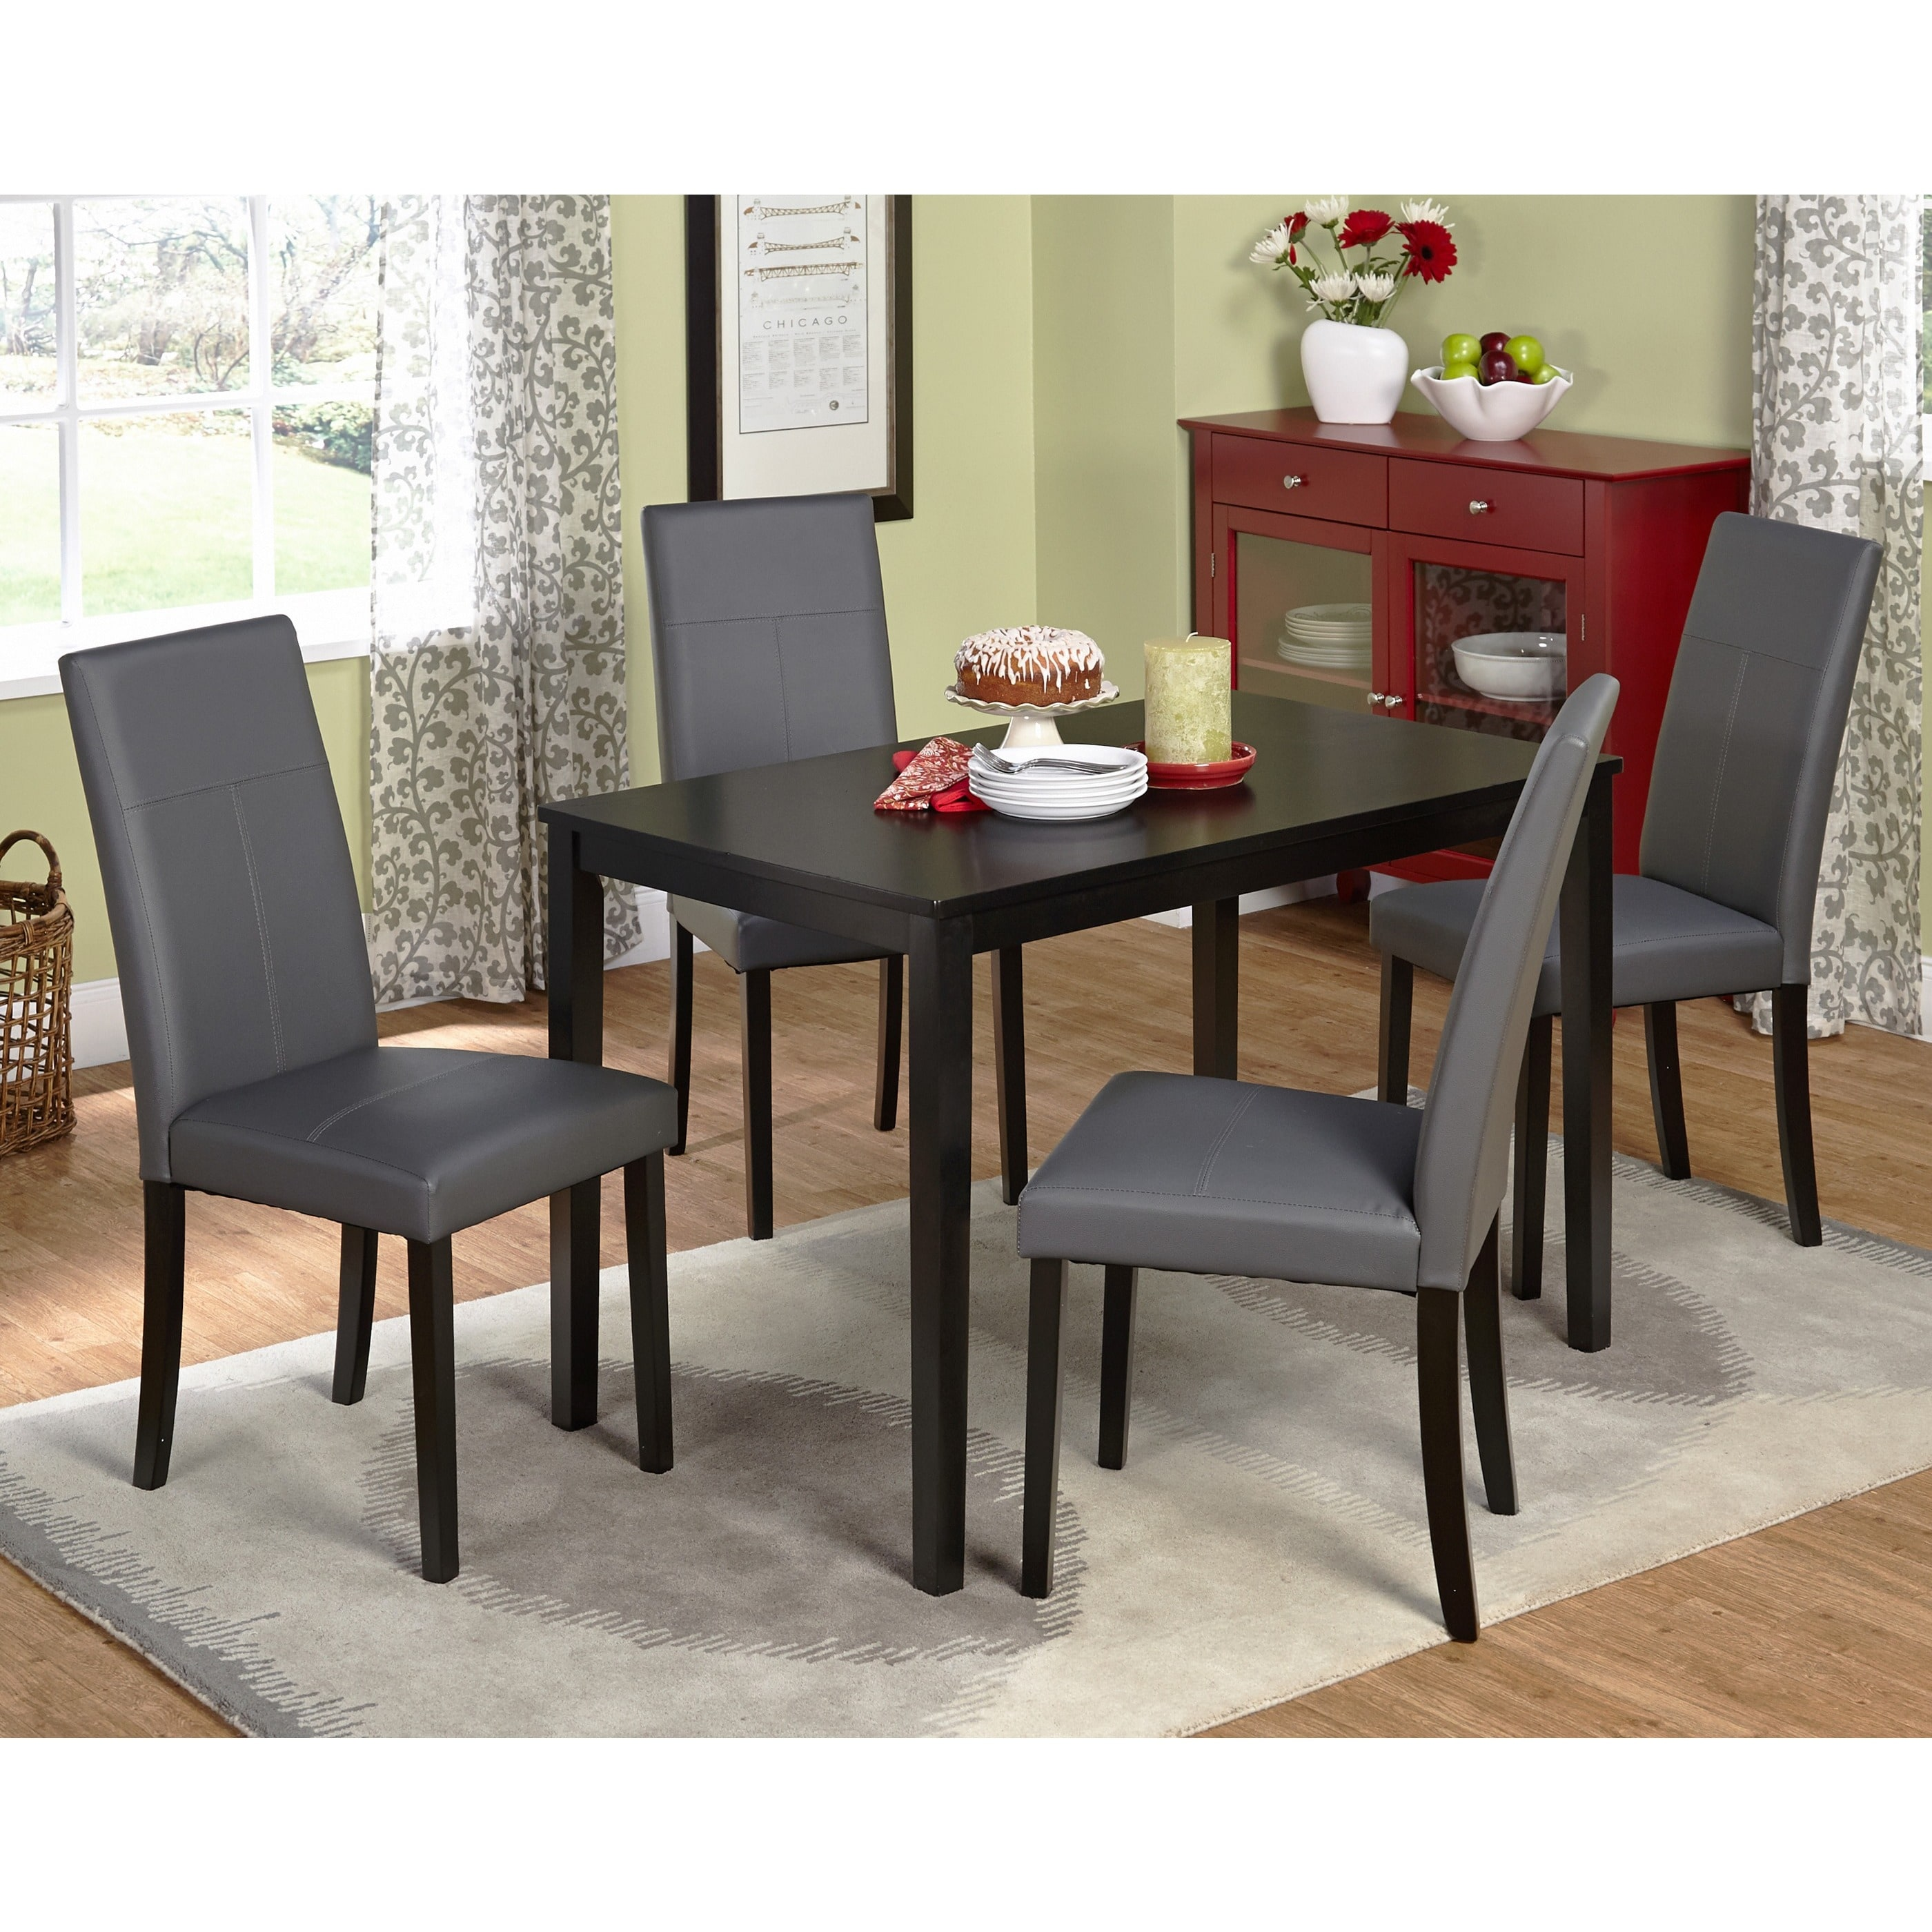 Simple Living Bettega Parson Five Piece Dining Set   Free Shipping Today    Overstock   14998513